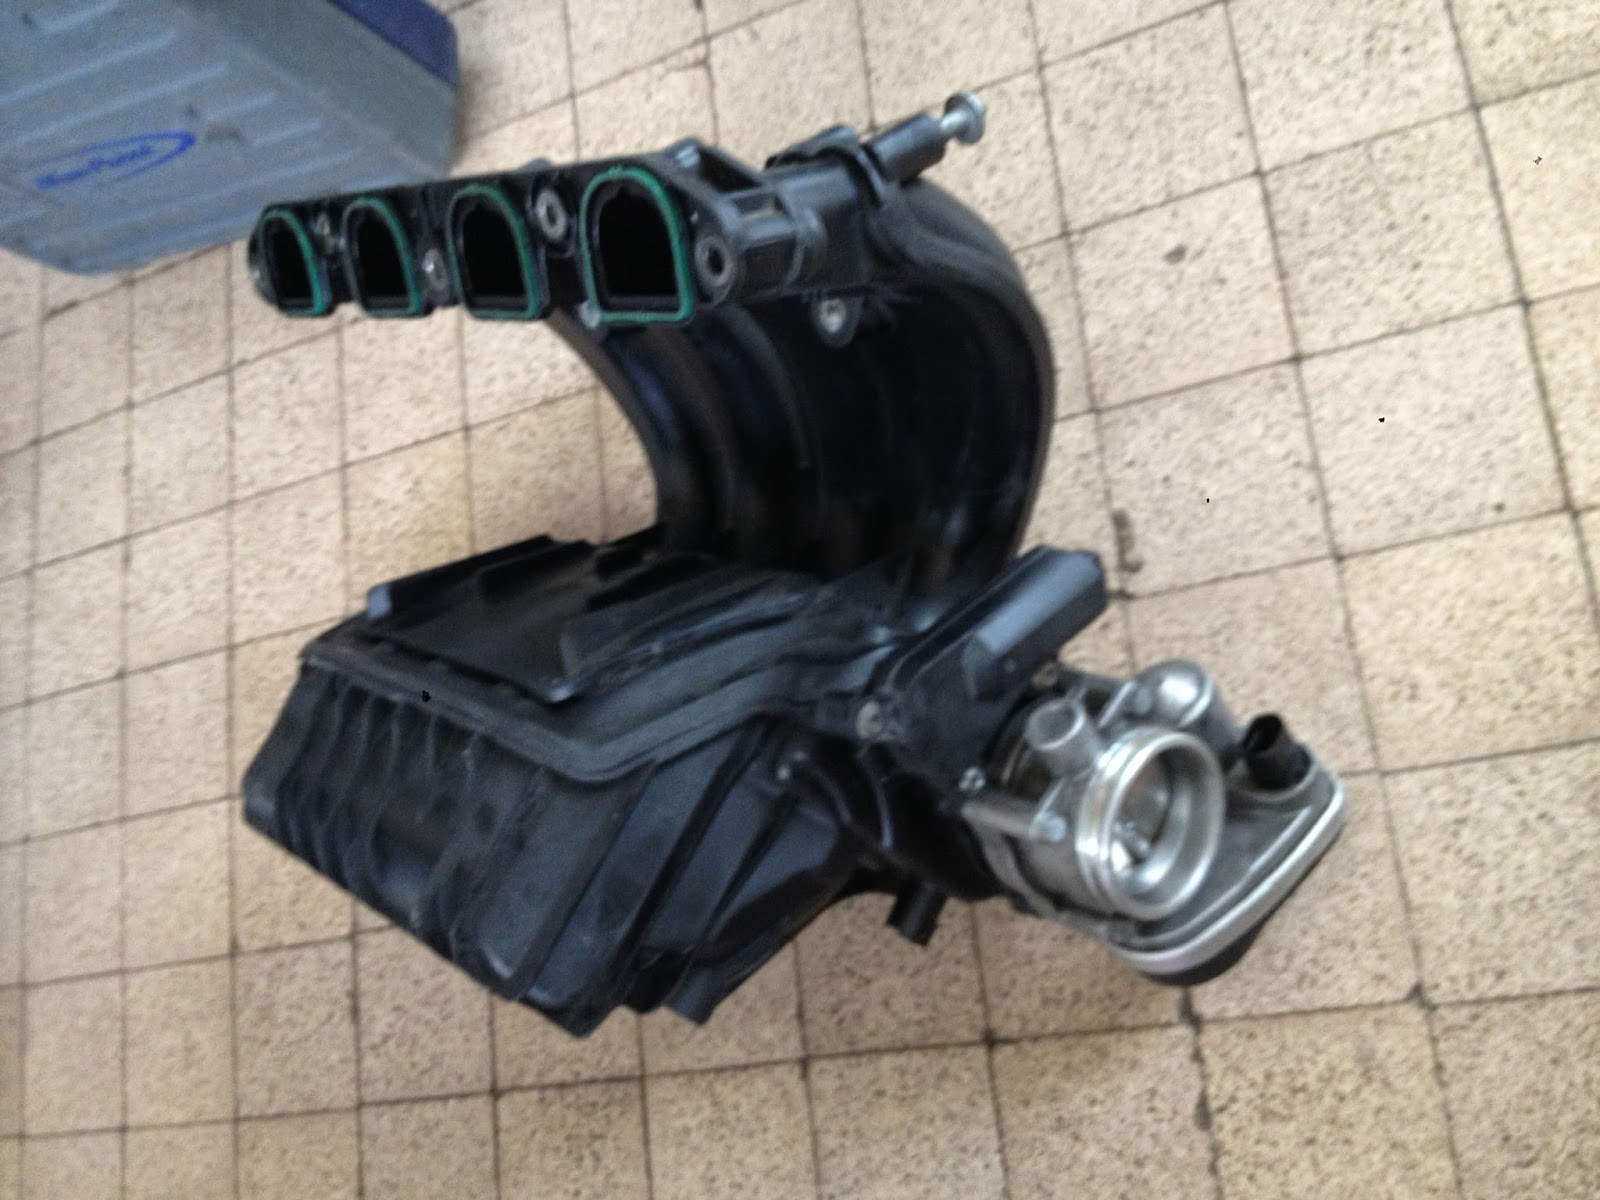 Beemer Lab formerly Planet 5 E46 CCV Intake Re con